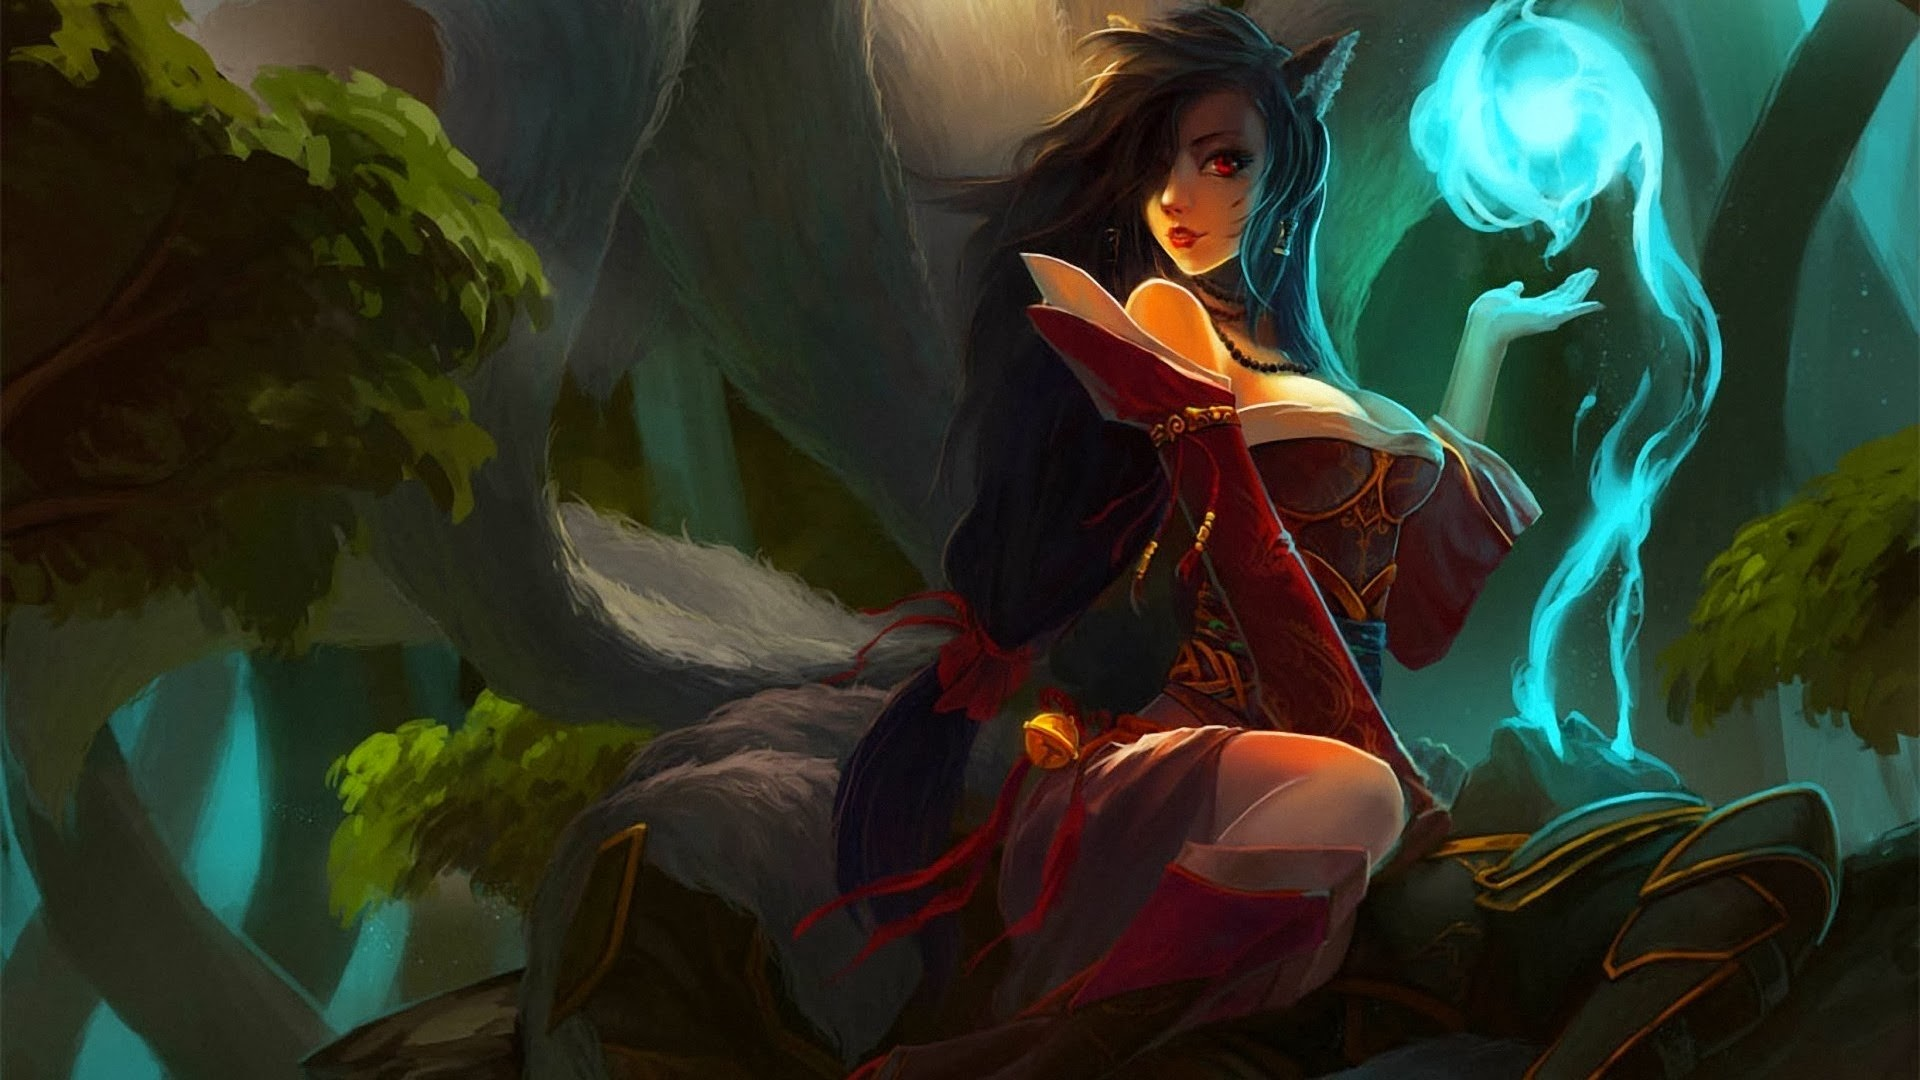 legends hd wallpaper background lol sexy girl champion 1920x1080 29 1920x1080